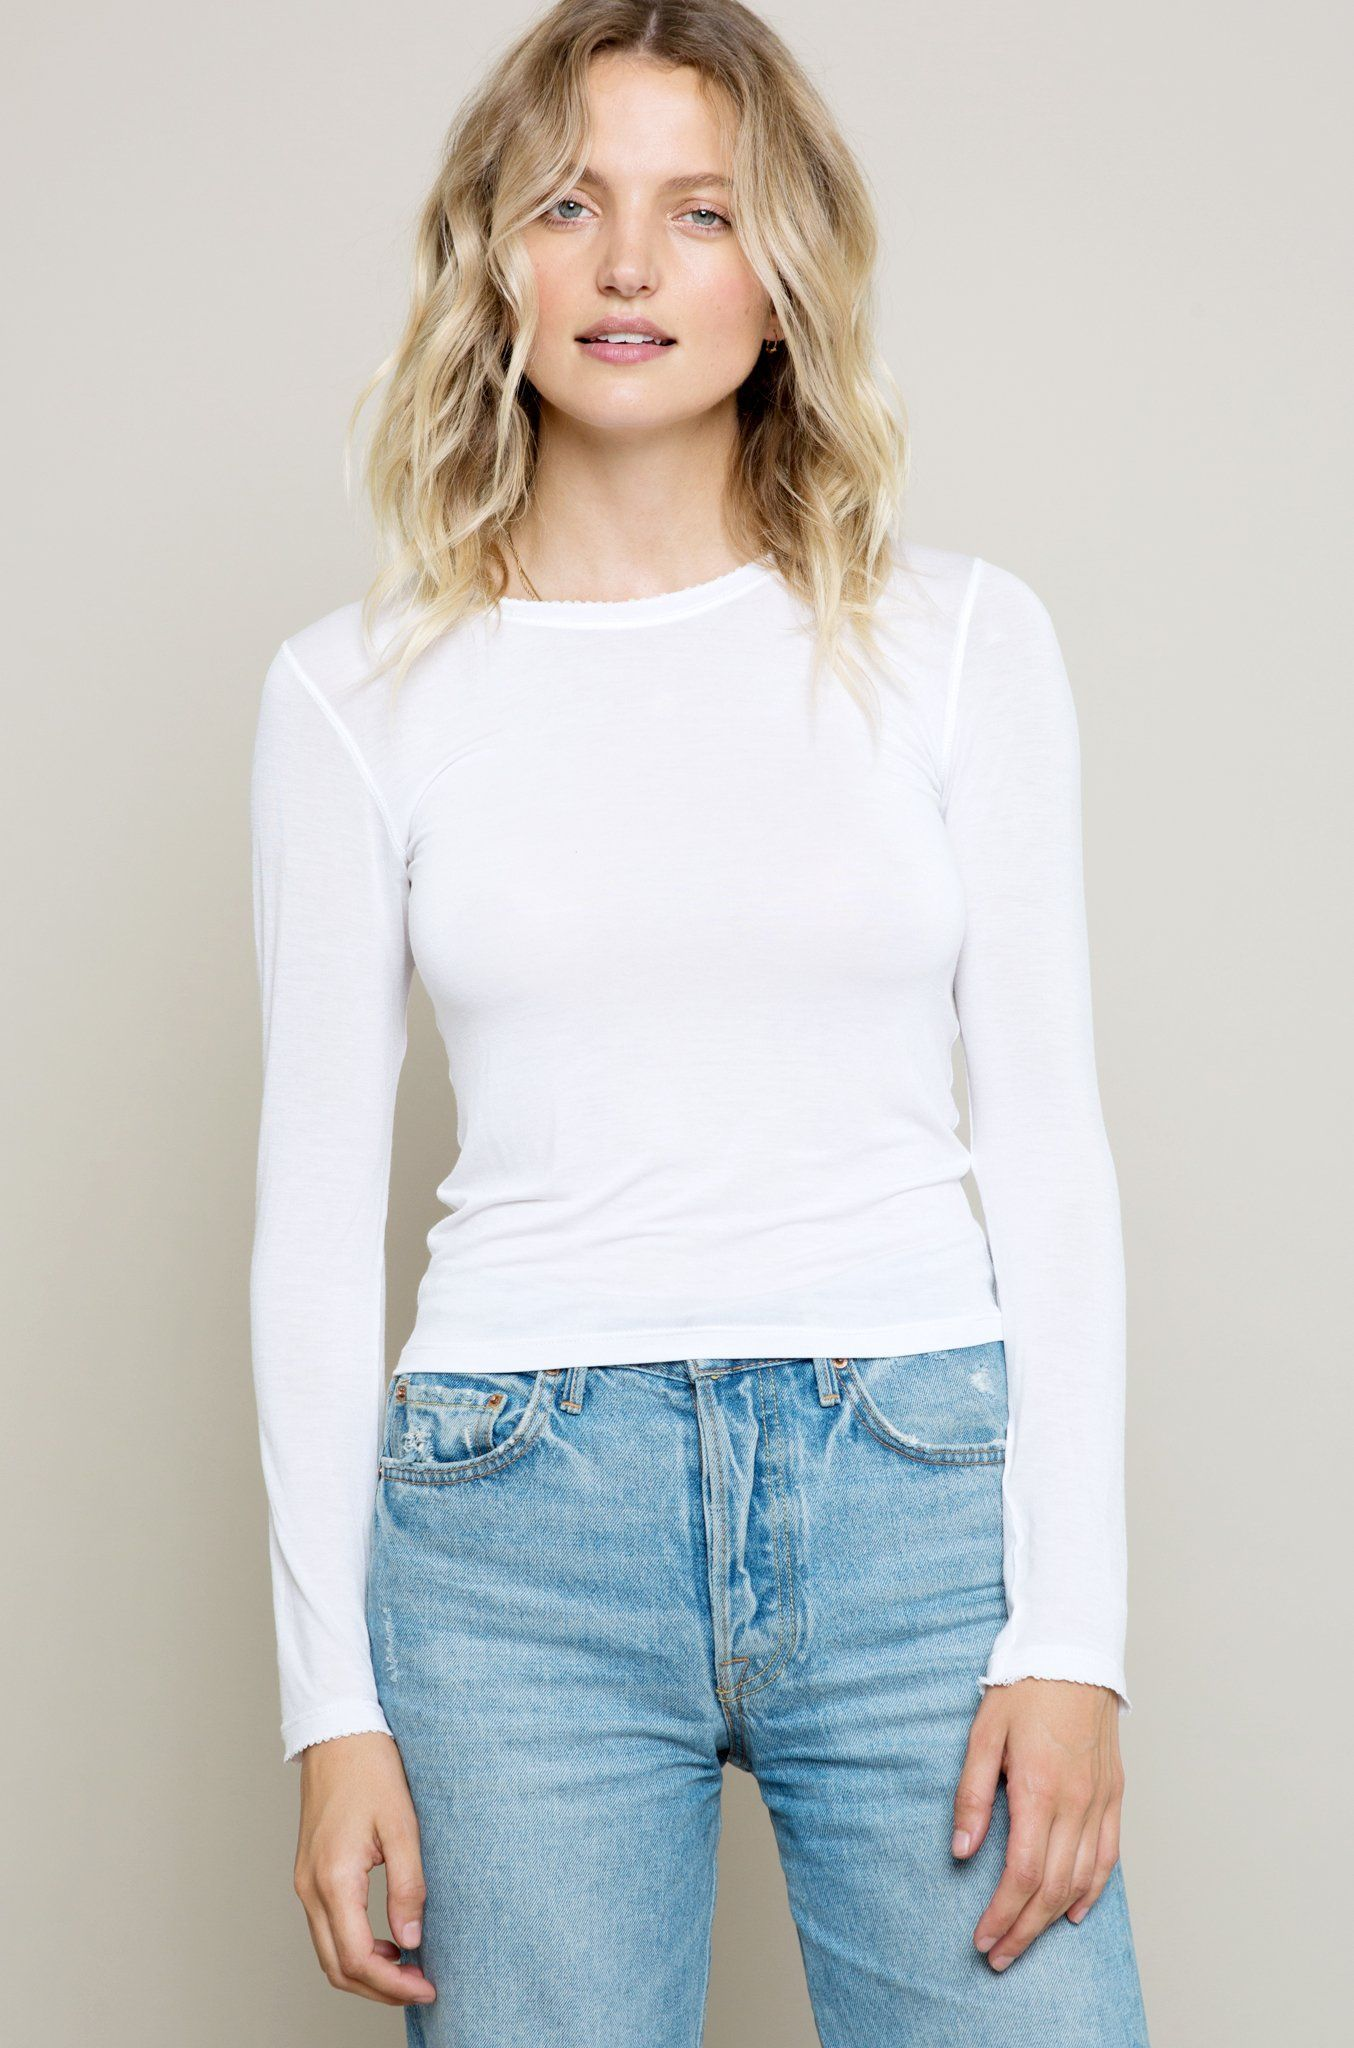 Our best-selling wardrobe staple - the perfect long, slim tee. Subtle details, like our signature picot edging, make this tee special. A great fit makes this tee a versatile wardrobe essential. Wear it all day long with jeans, then throw on a pair of heels + look chic for the evening. We also love to layer it beneath our slip dresses.  STYLE DETAILS  Silky soft, 100% cotton (delicate wash cold + lay flat to dry) Snap buttons at back neck Made in Los Angeles Amandais 5'9 + wearing a size…